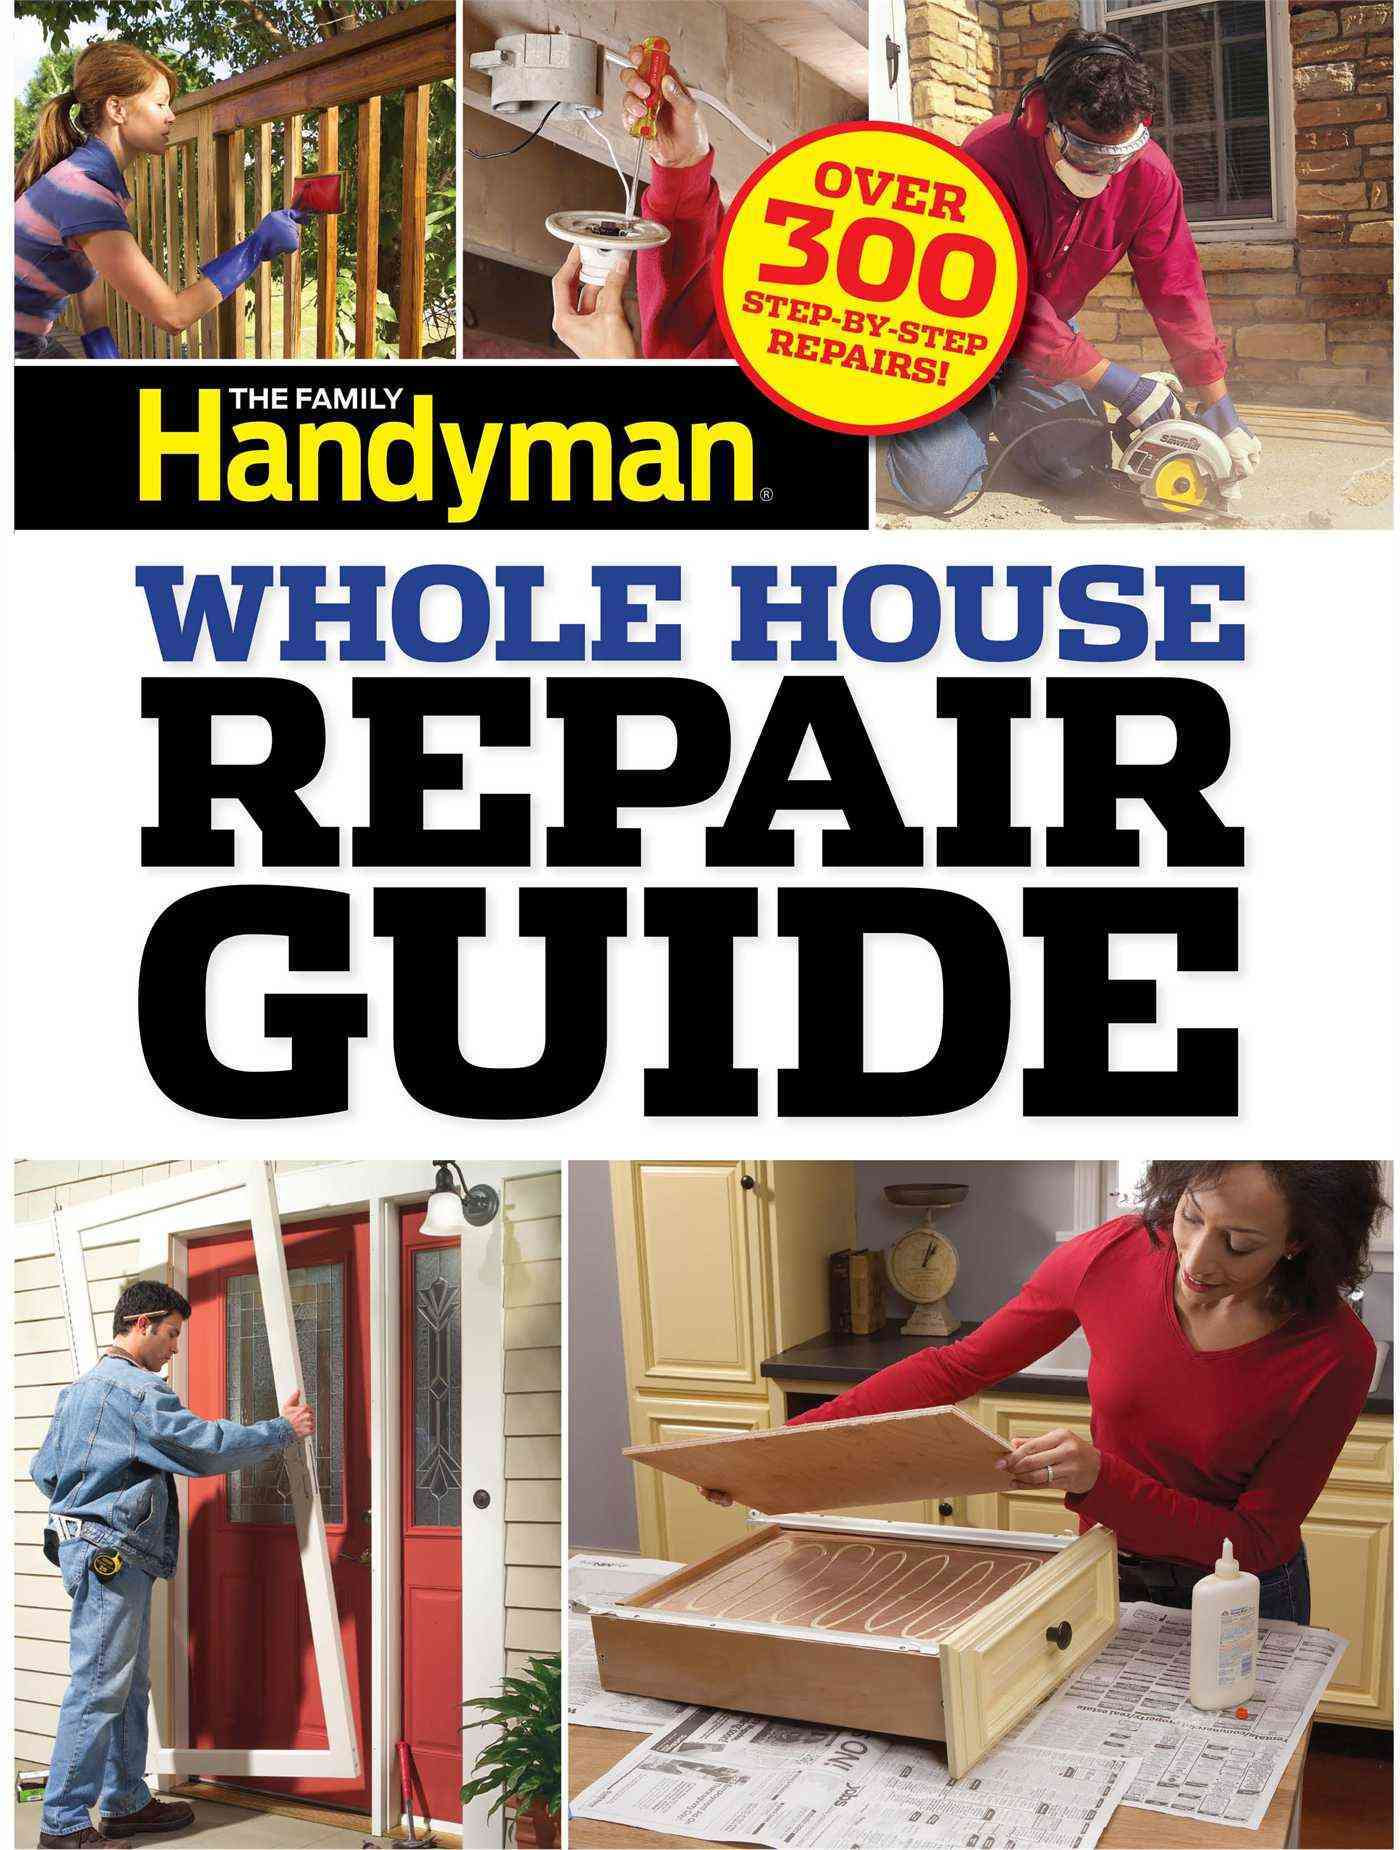 The Family Handyman Whole House Repair Guide (Paperback)